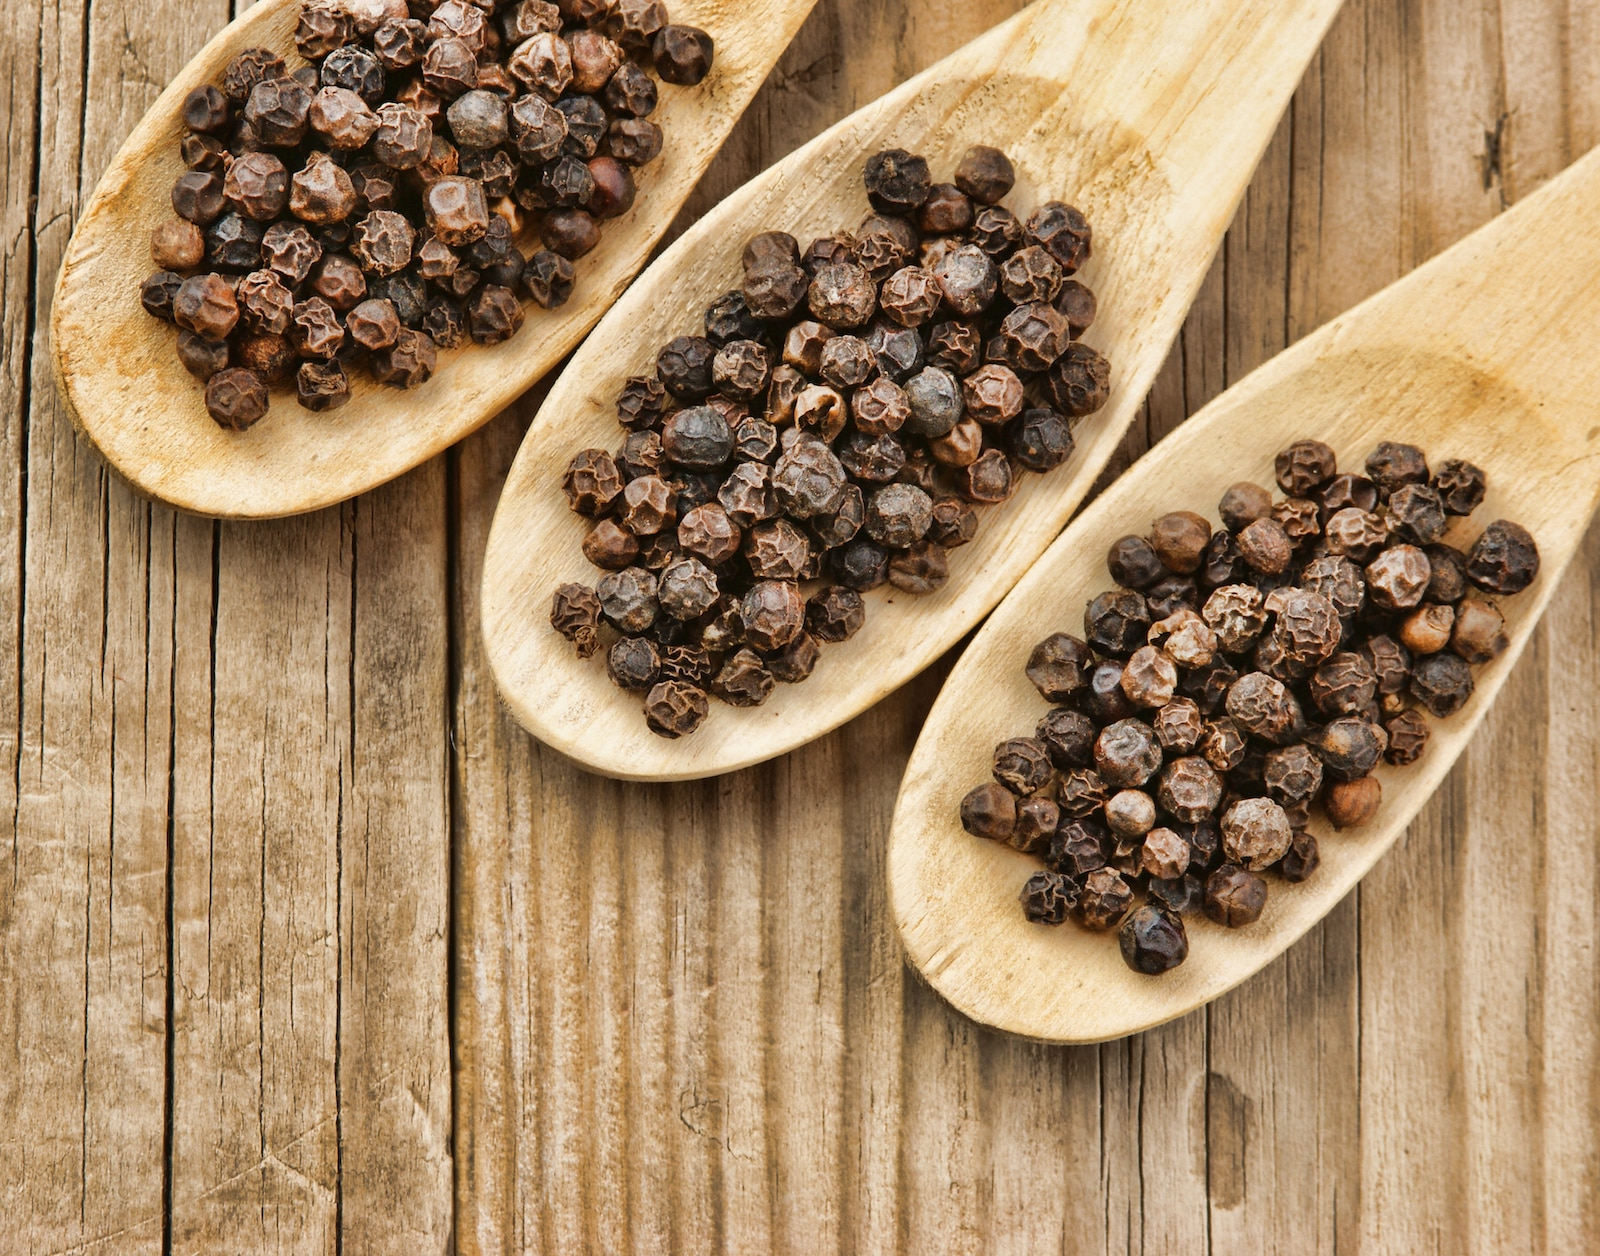 Is Black Pepper Good For You?